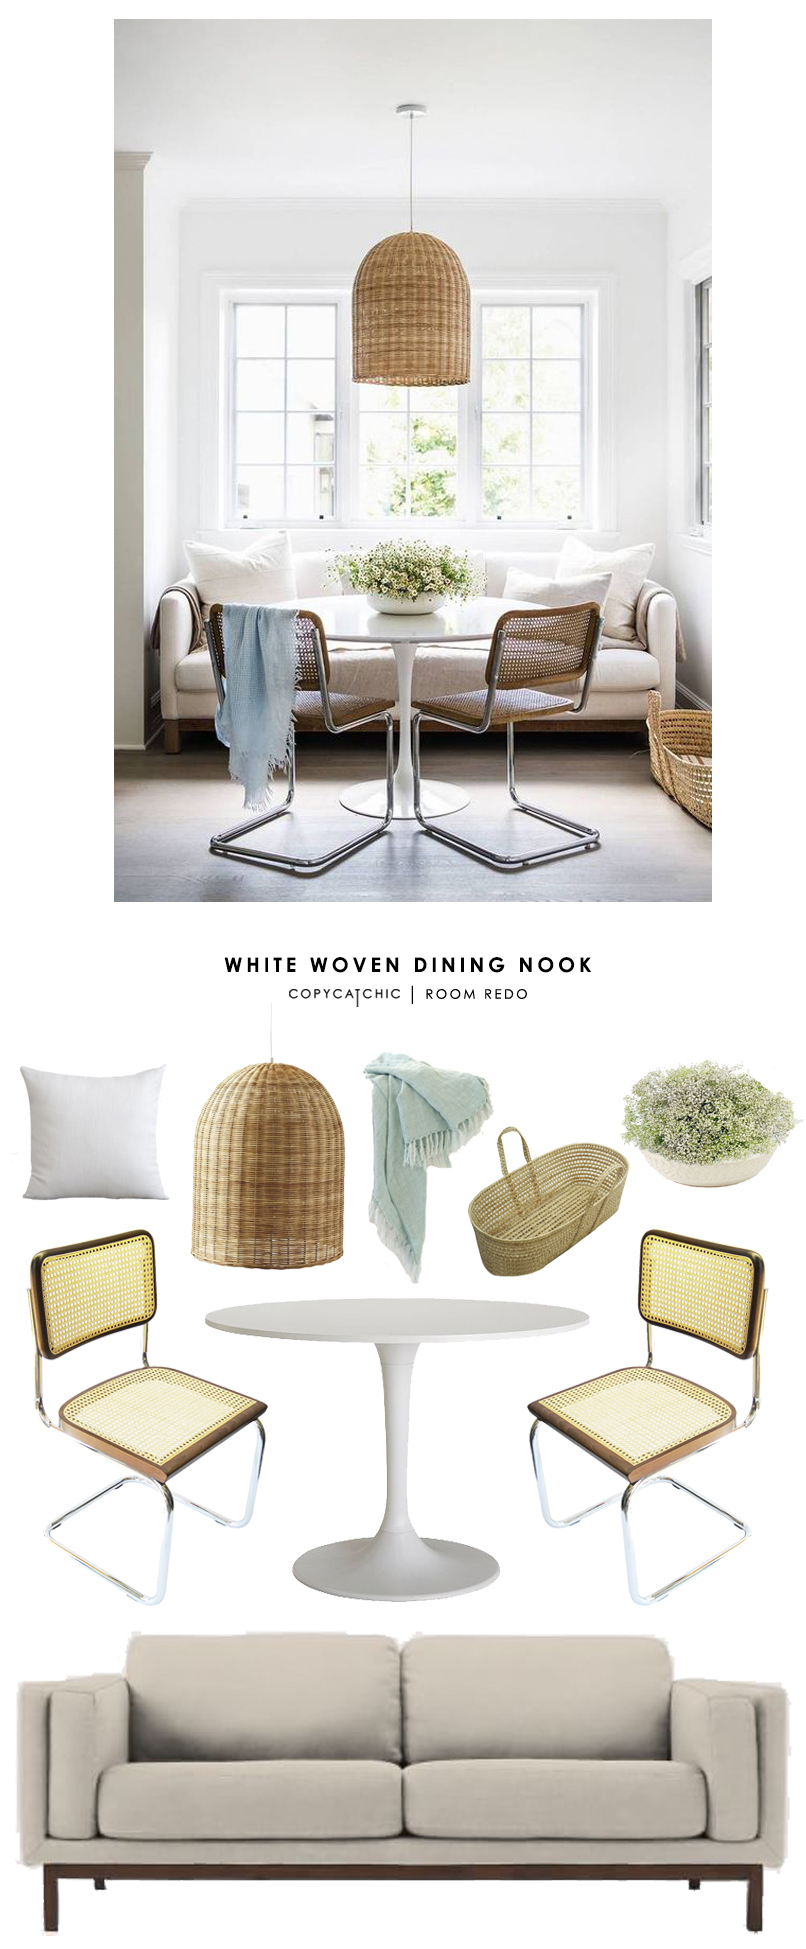 Erin Fetherstone's white eclectic dining nook featured in Domino Magazine gets recreated for less by @copycatchic room redo look for less budget home decor